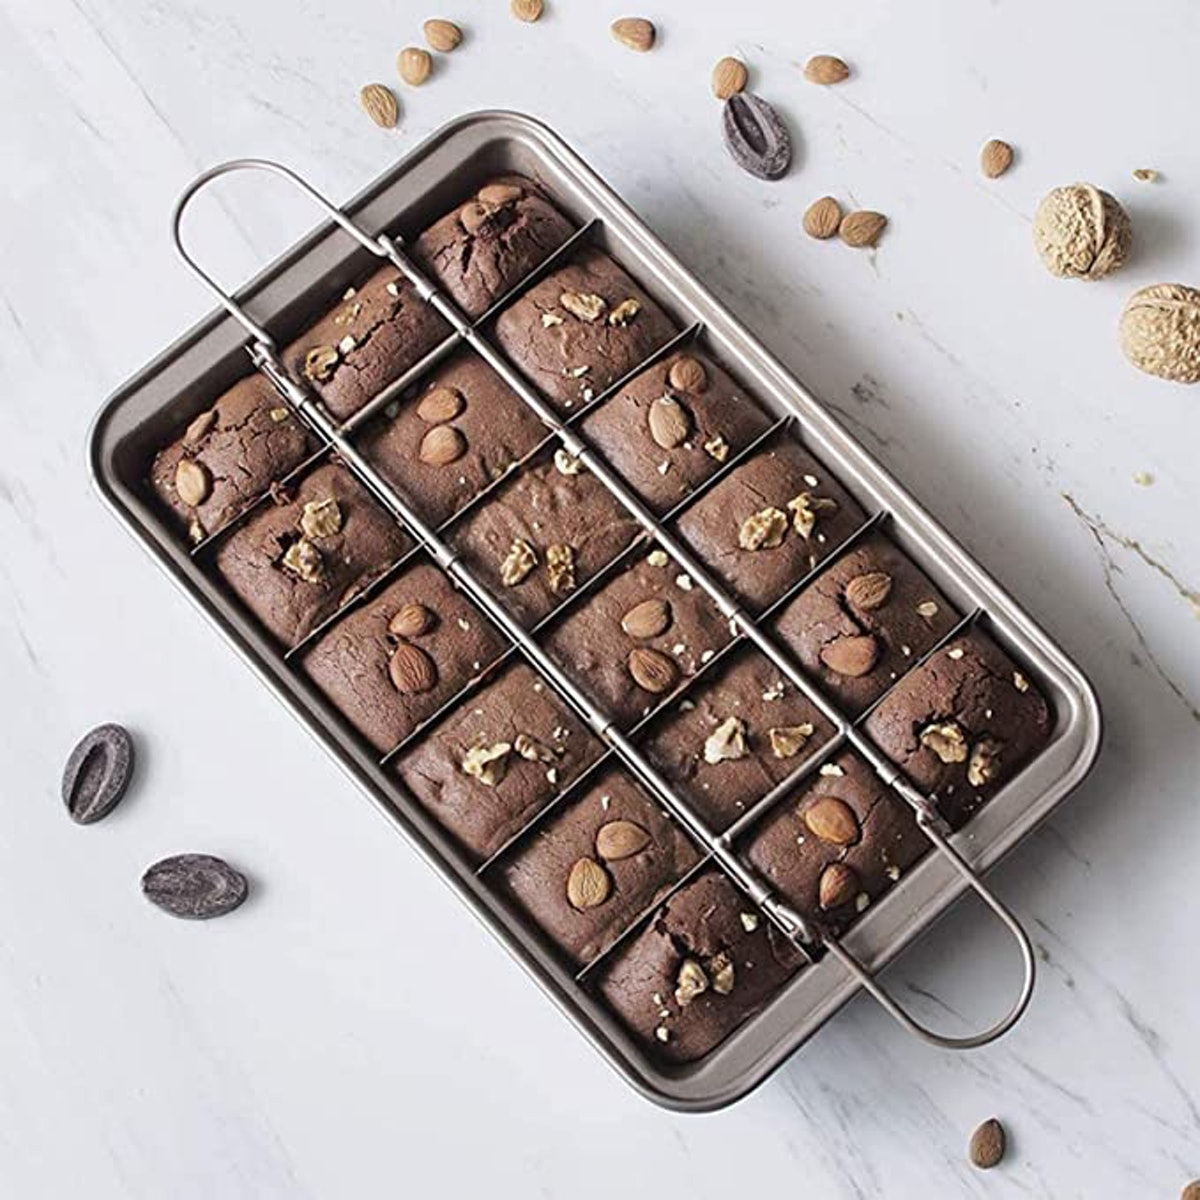 Ailelan Non-Stick Brownie Pans With Dividers